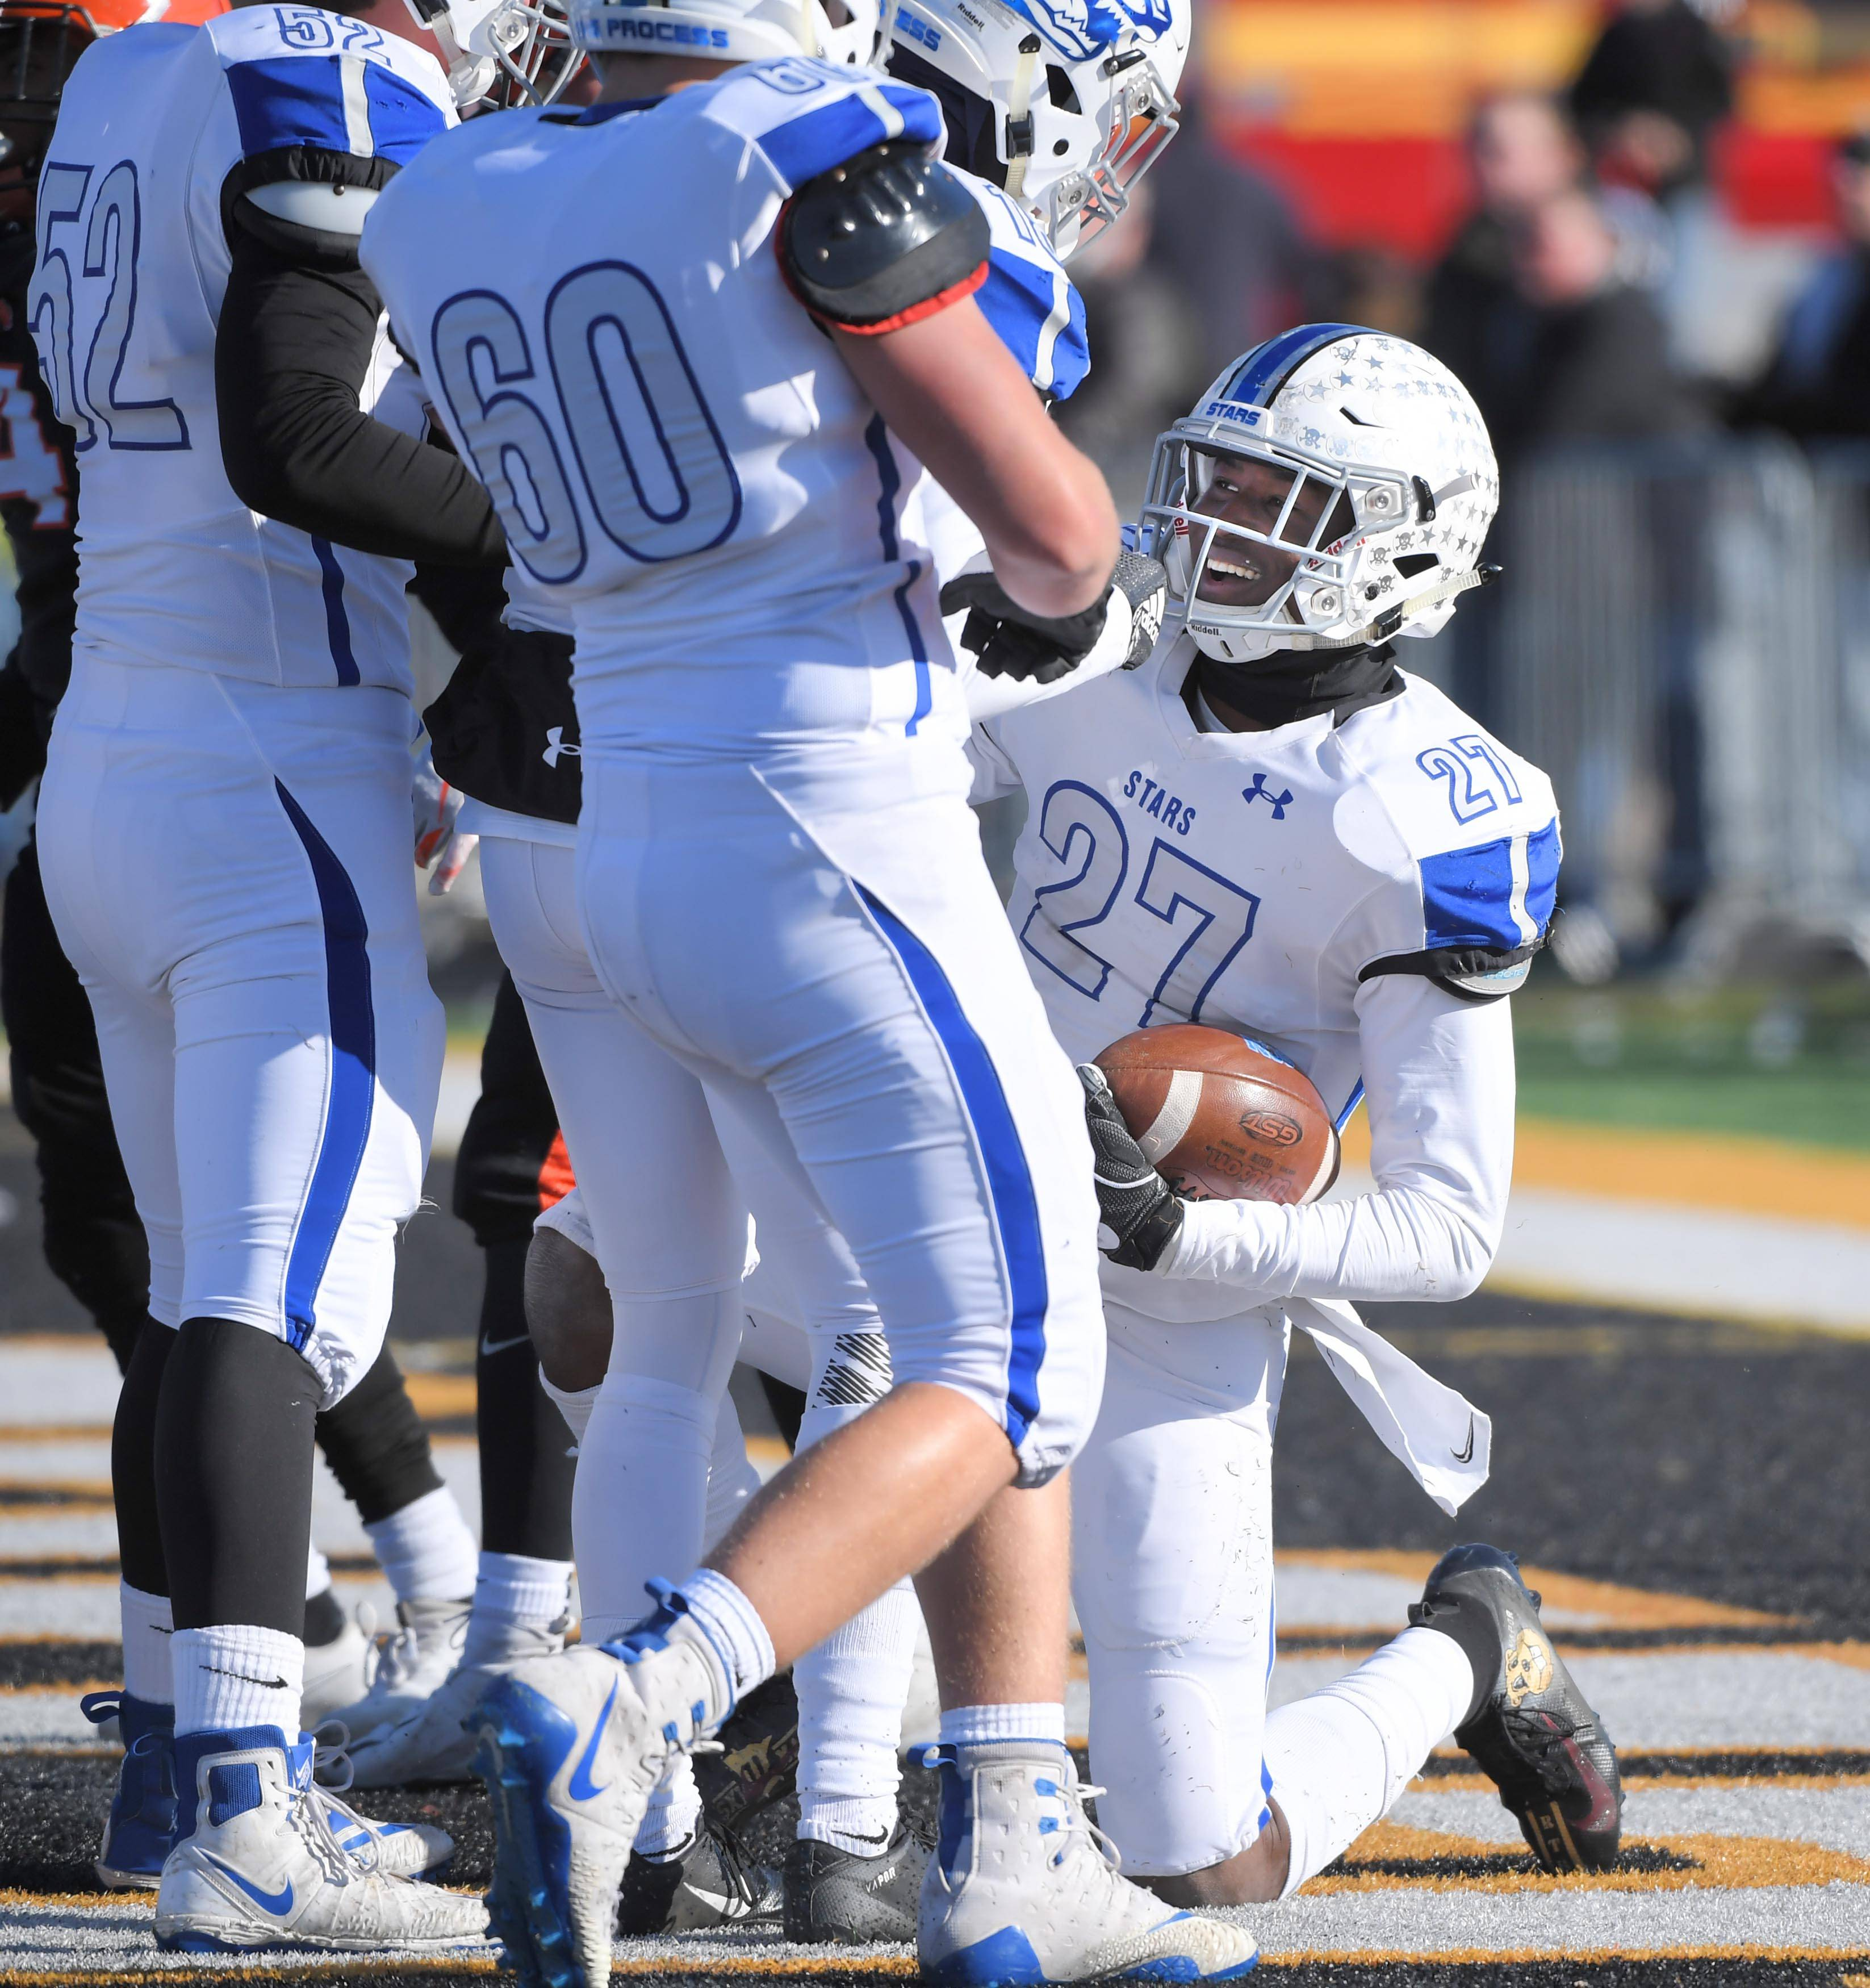 St. Charles North's Tyler Nubin is met by teammates in the end zone after his first-quarter touchdown catch against Wheaton Warrenville South Saturday in a quarterfinal playoff football game in Wheaton.